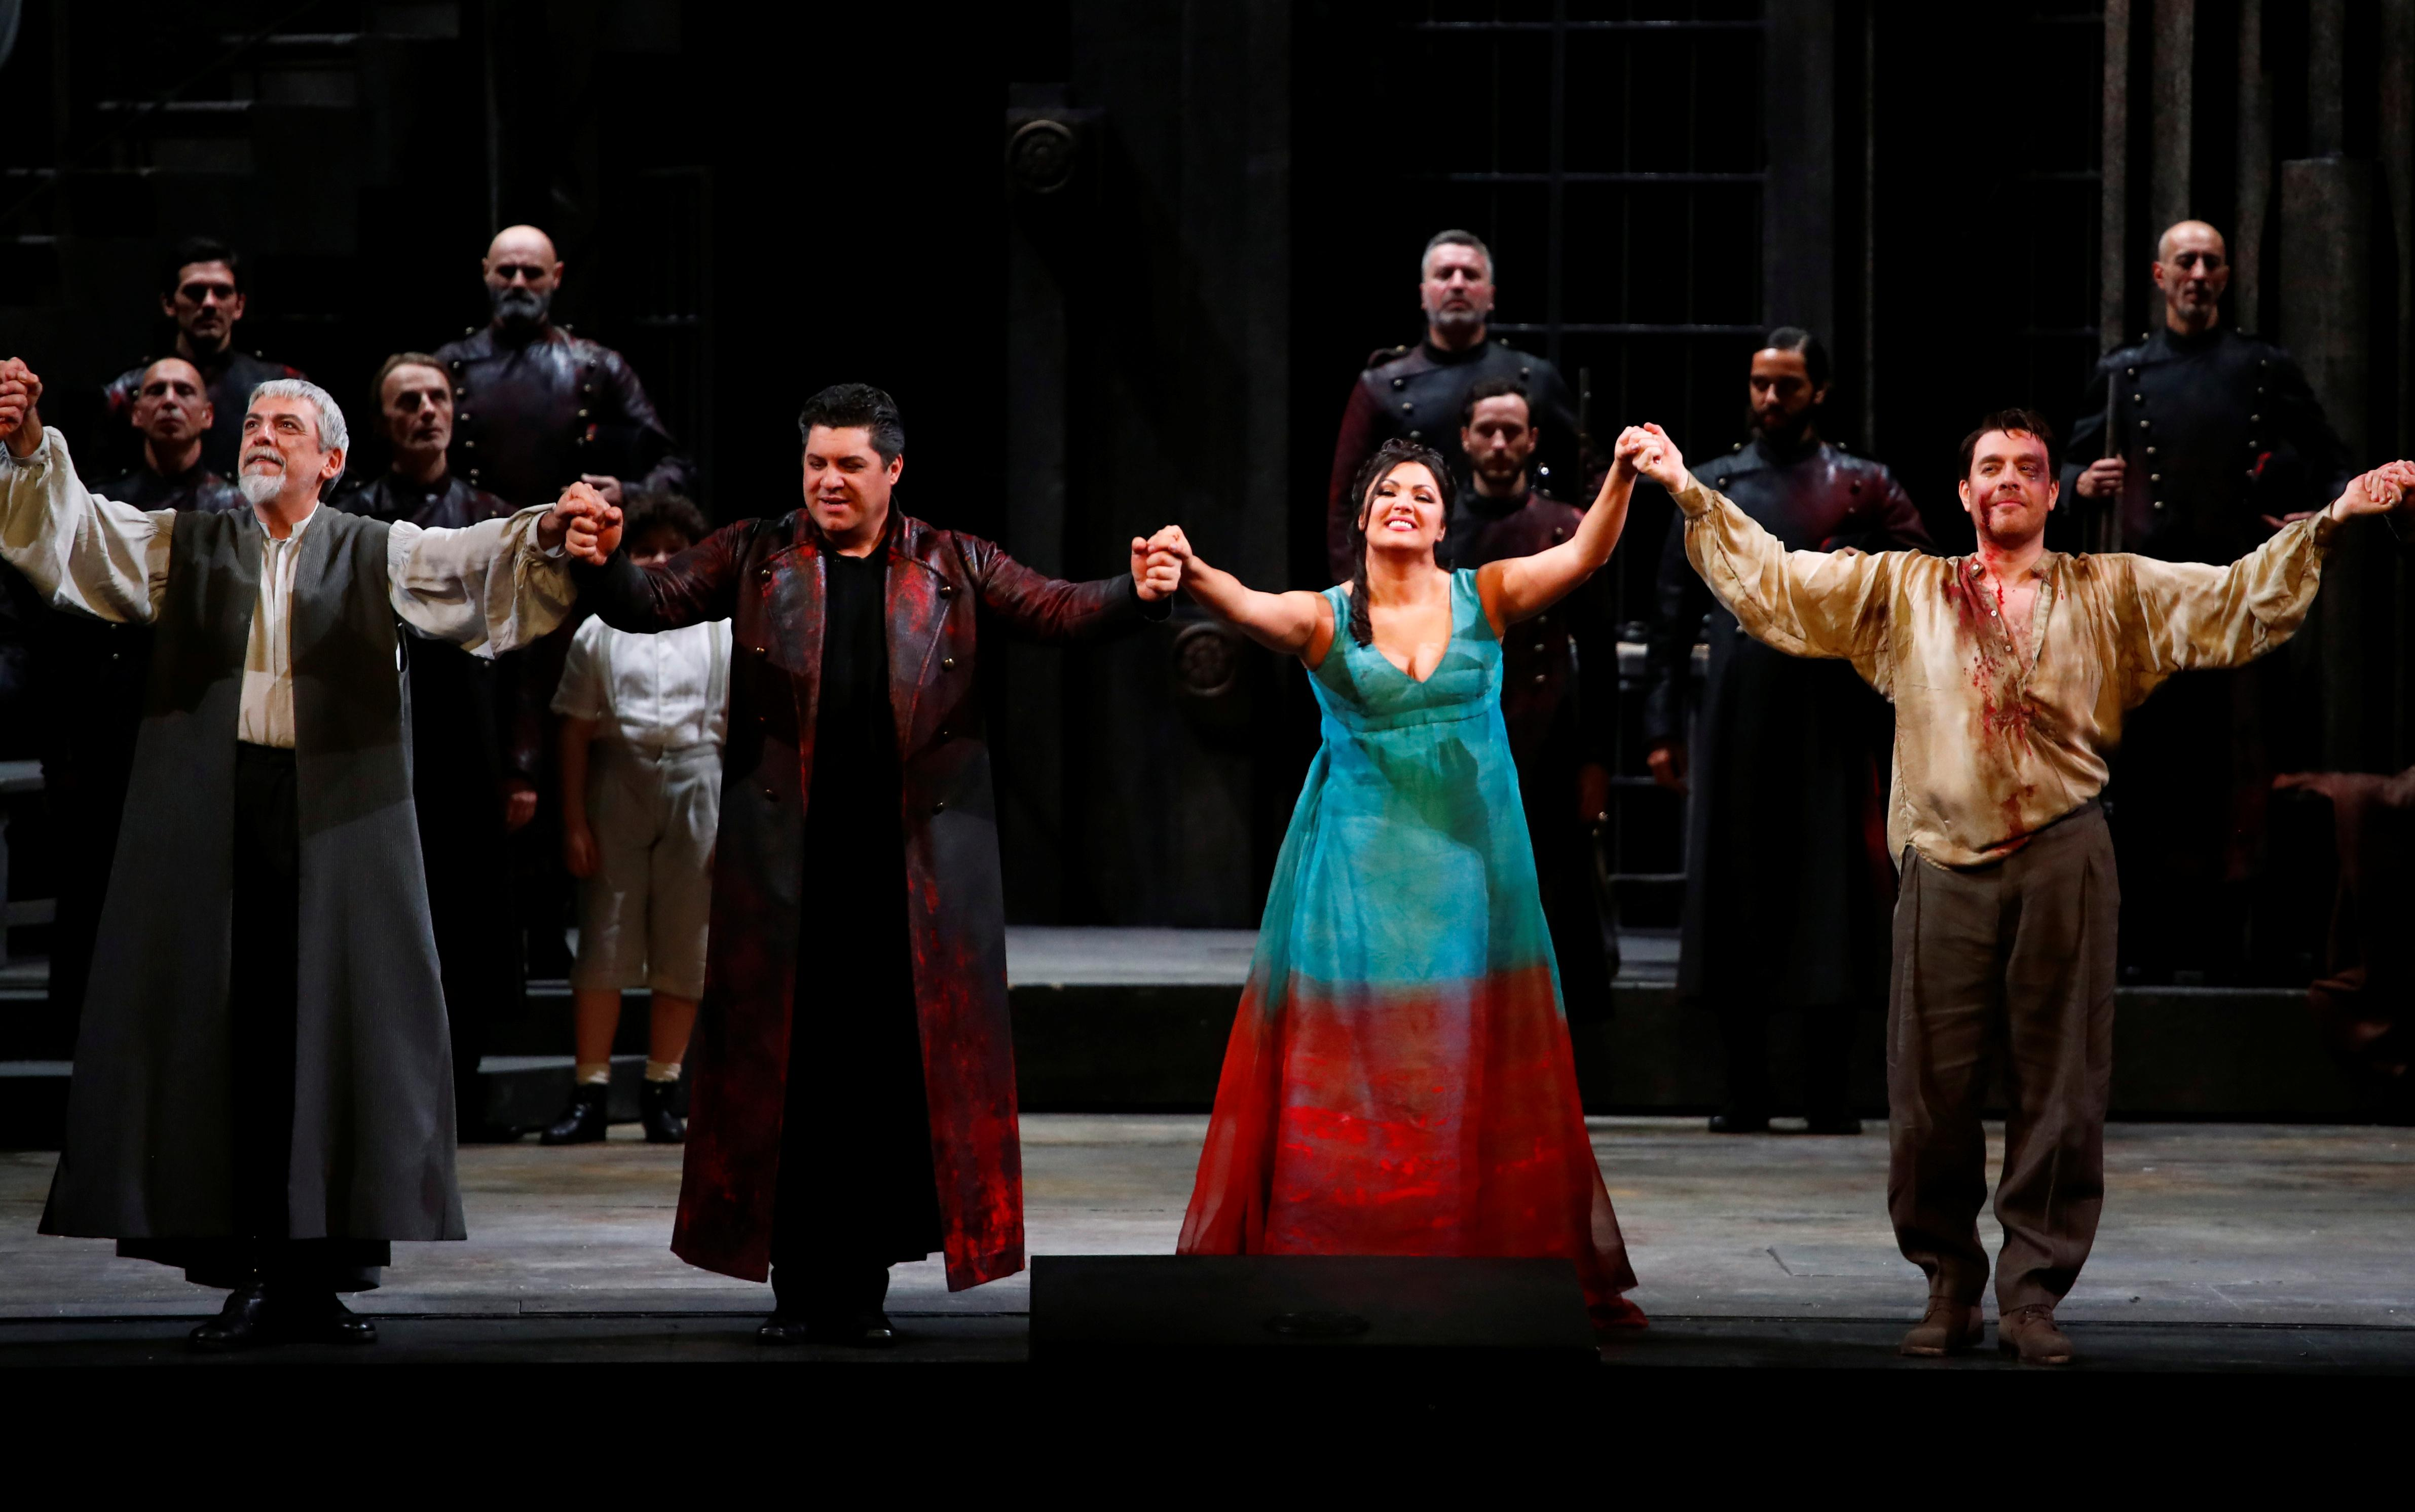 'Tosca' with a touch of cinema enthrals Milan's La Scala at opening...